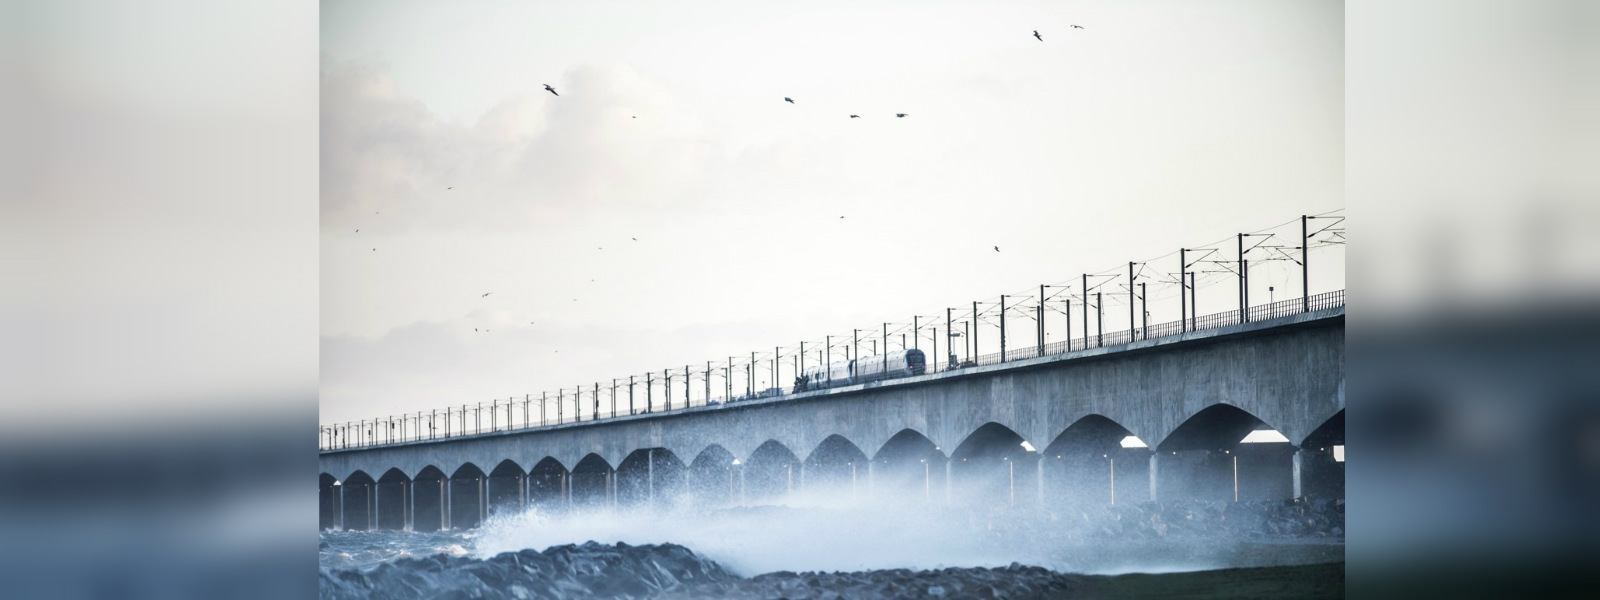 World's longest Viking bridge completed after three-year project